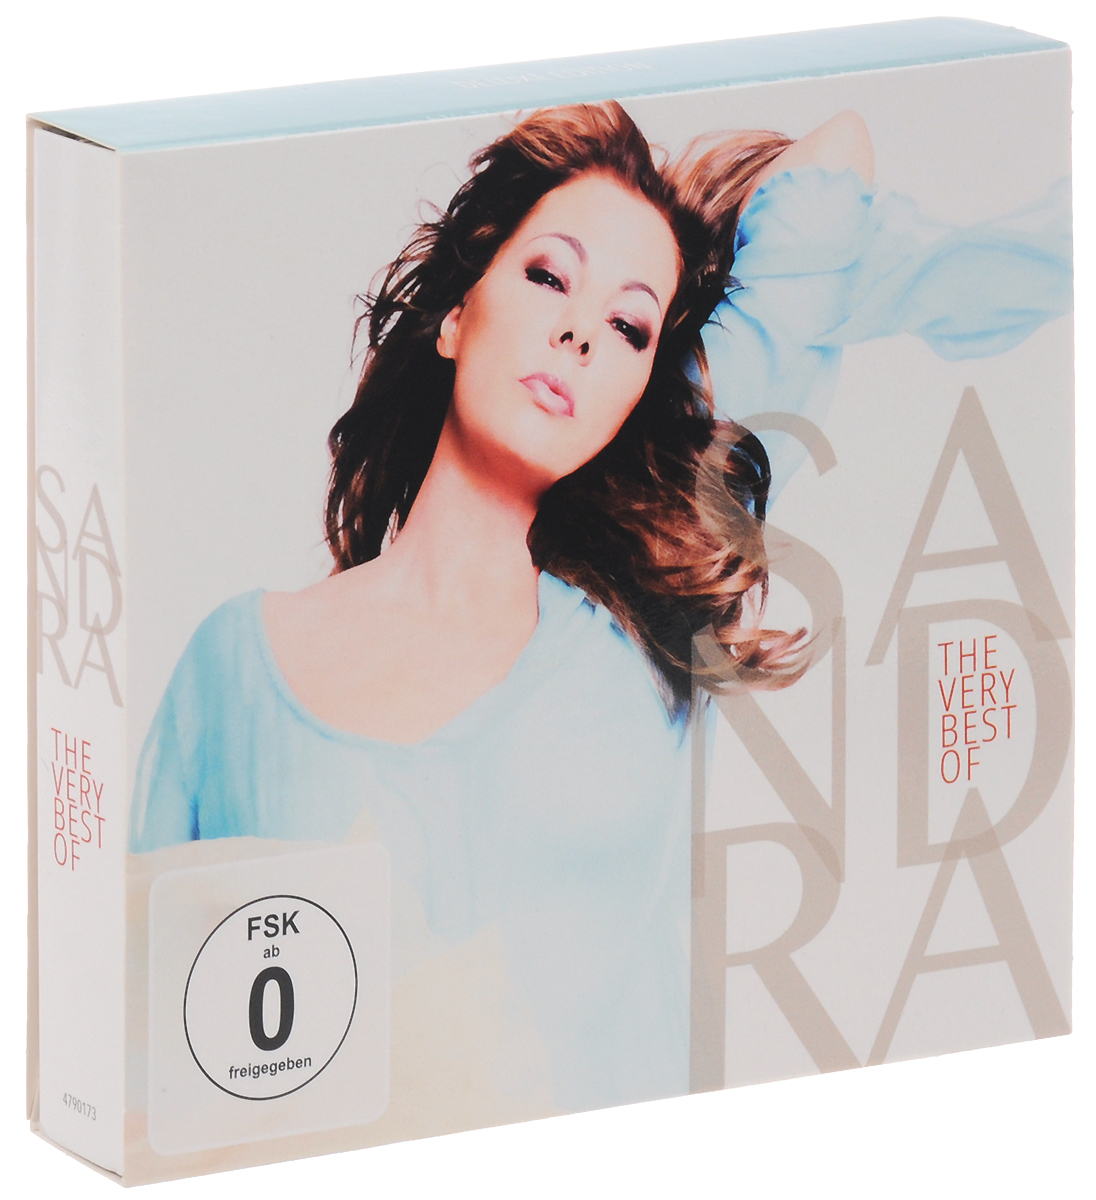 Фото Sandra Sandra. The Very Best Of Sandra. Deluxe Edition (2 CD + DVD)